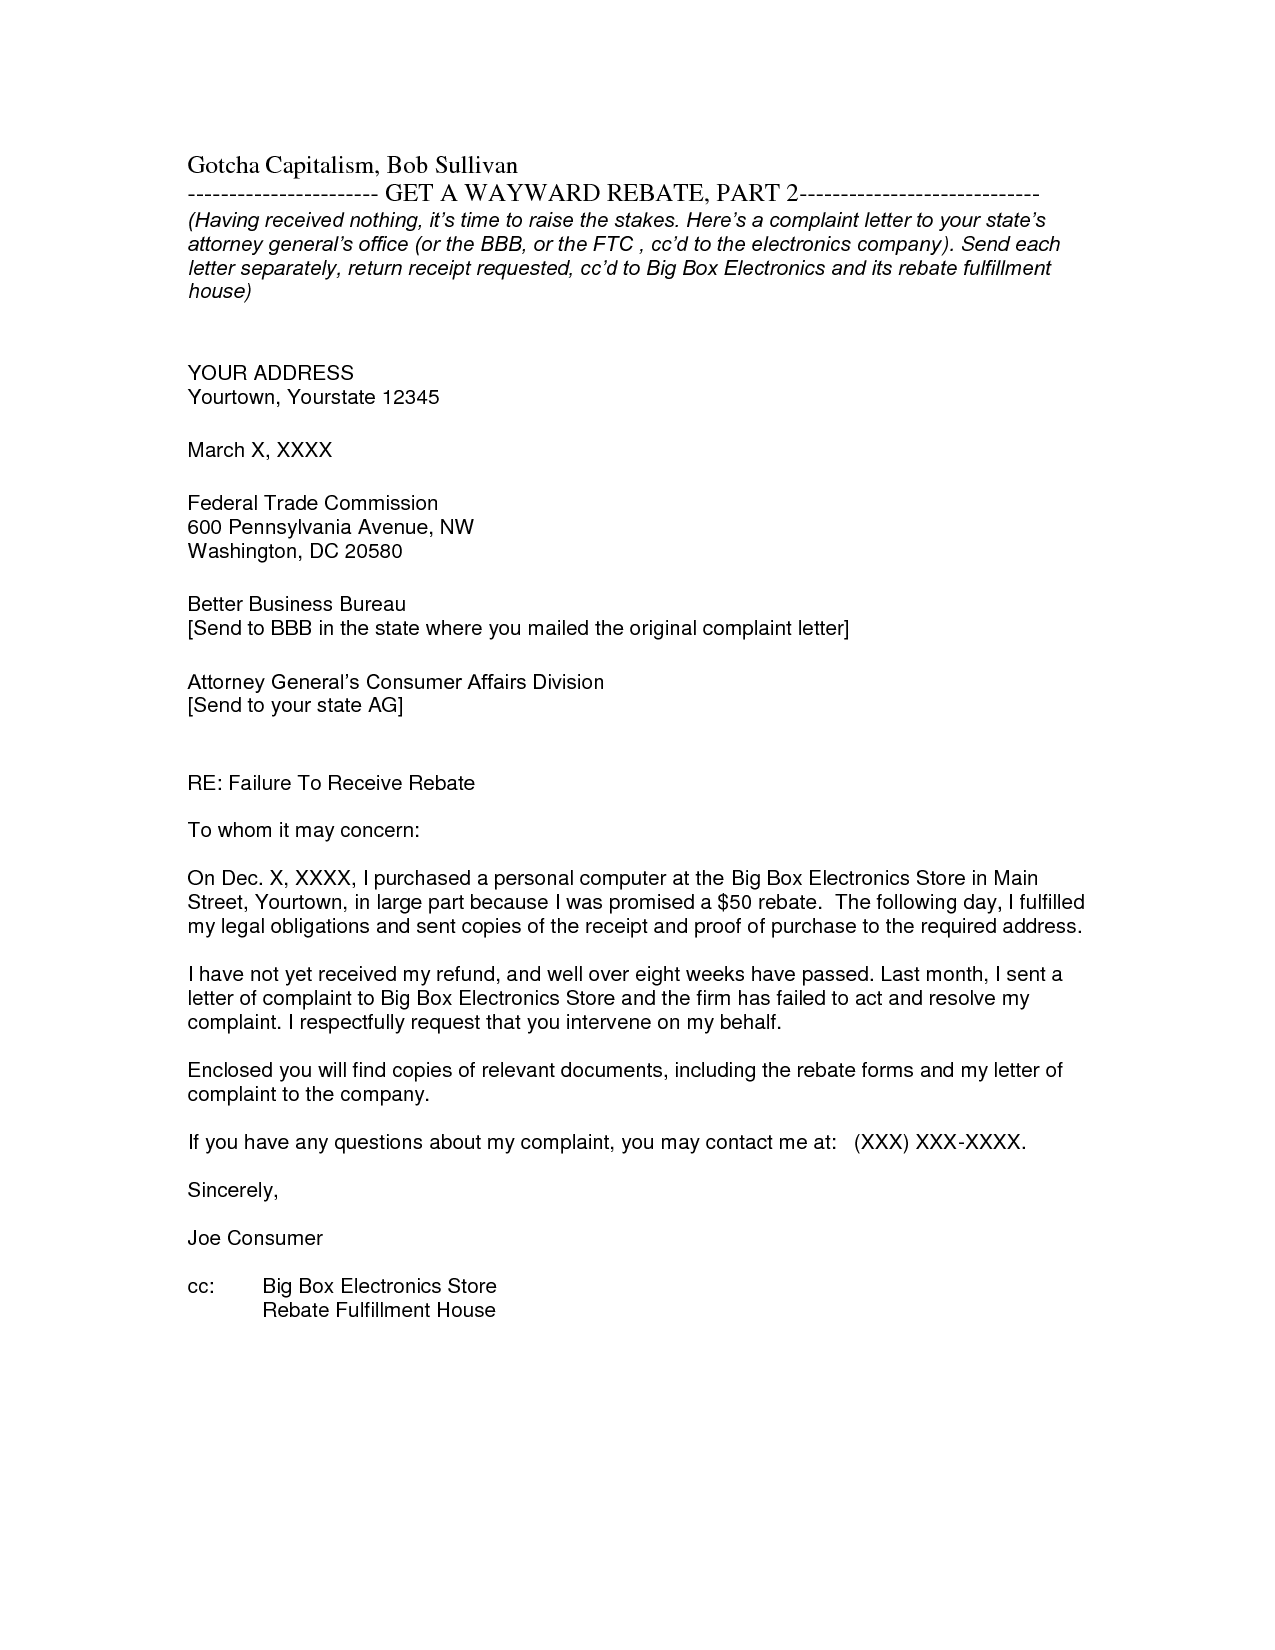 Carbon Copy Business Letter Sample Joseph Stephen Timms Hard